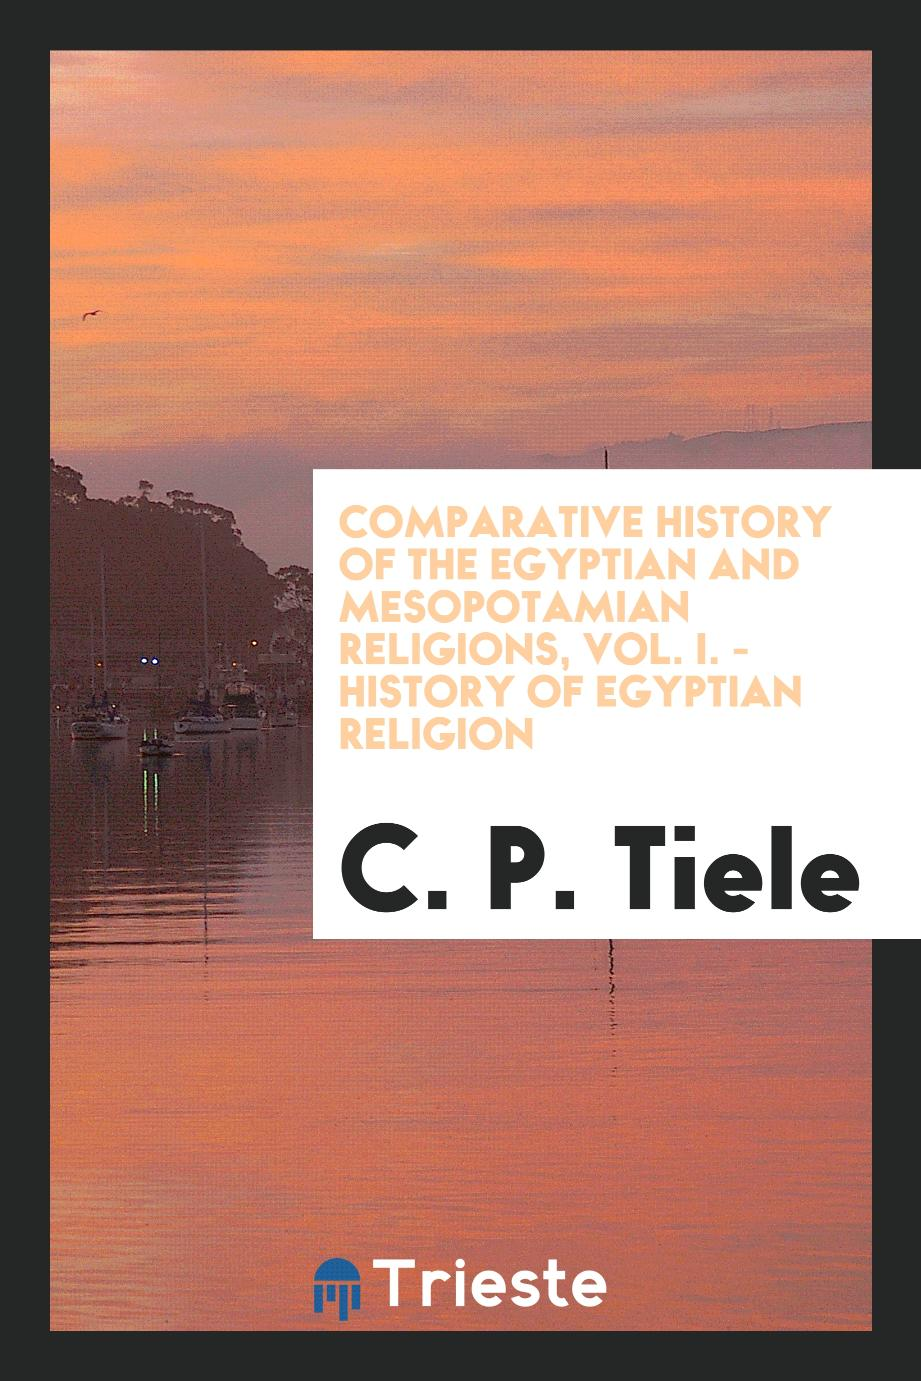 Comparative history of the Egyptian and Mesopotamian religions, Vol. I. - History of Egyptian religion